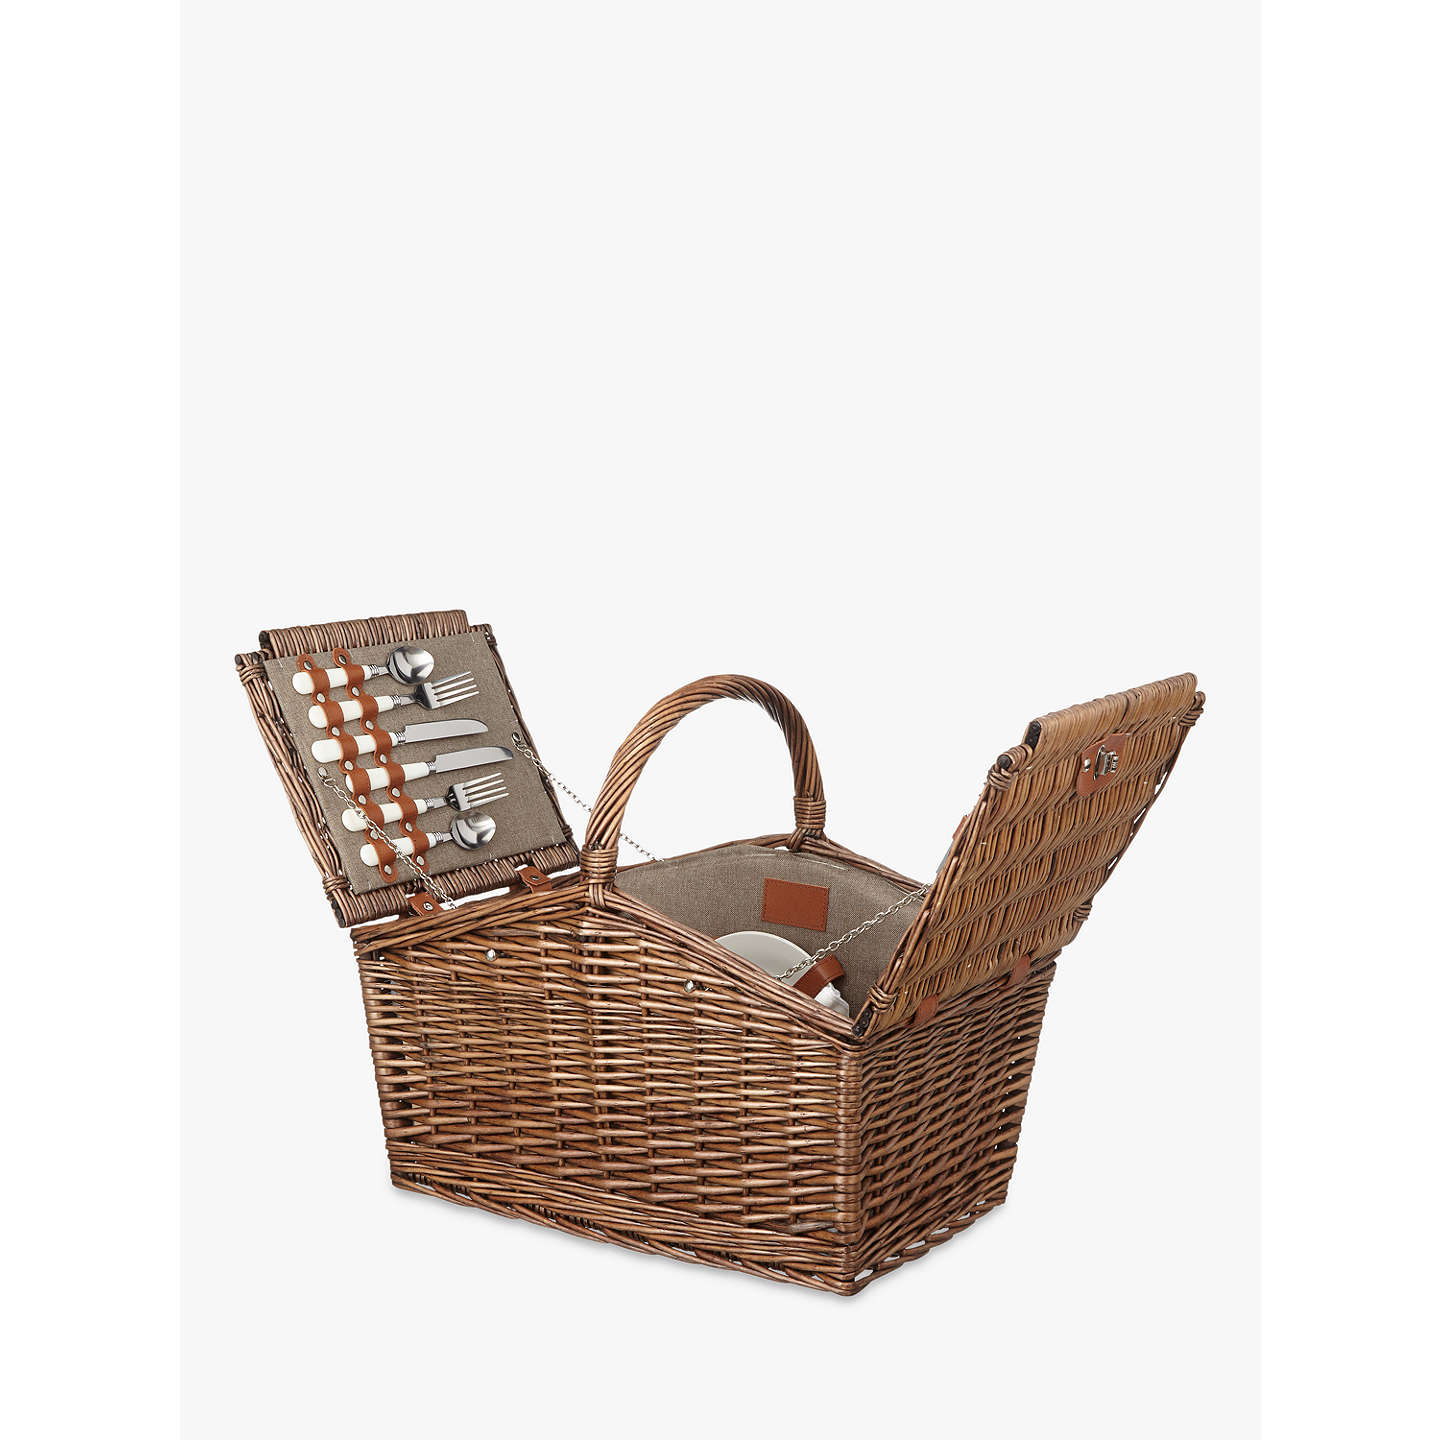 BuyCroft Collection Filled Picnic Hamper, 4 Person Online at johnlewis.com